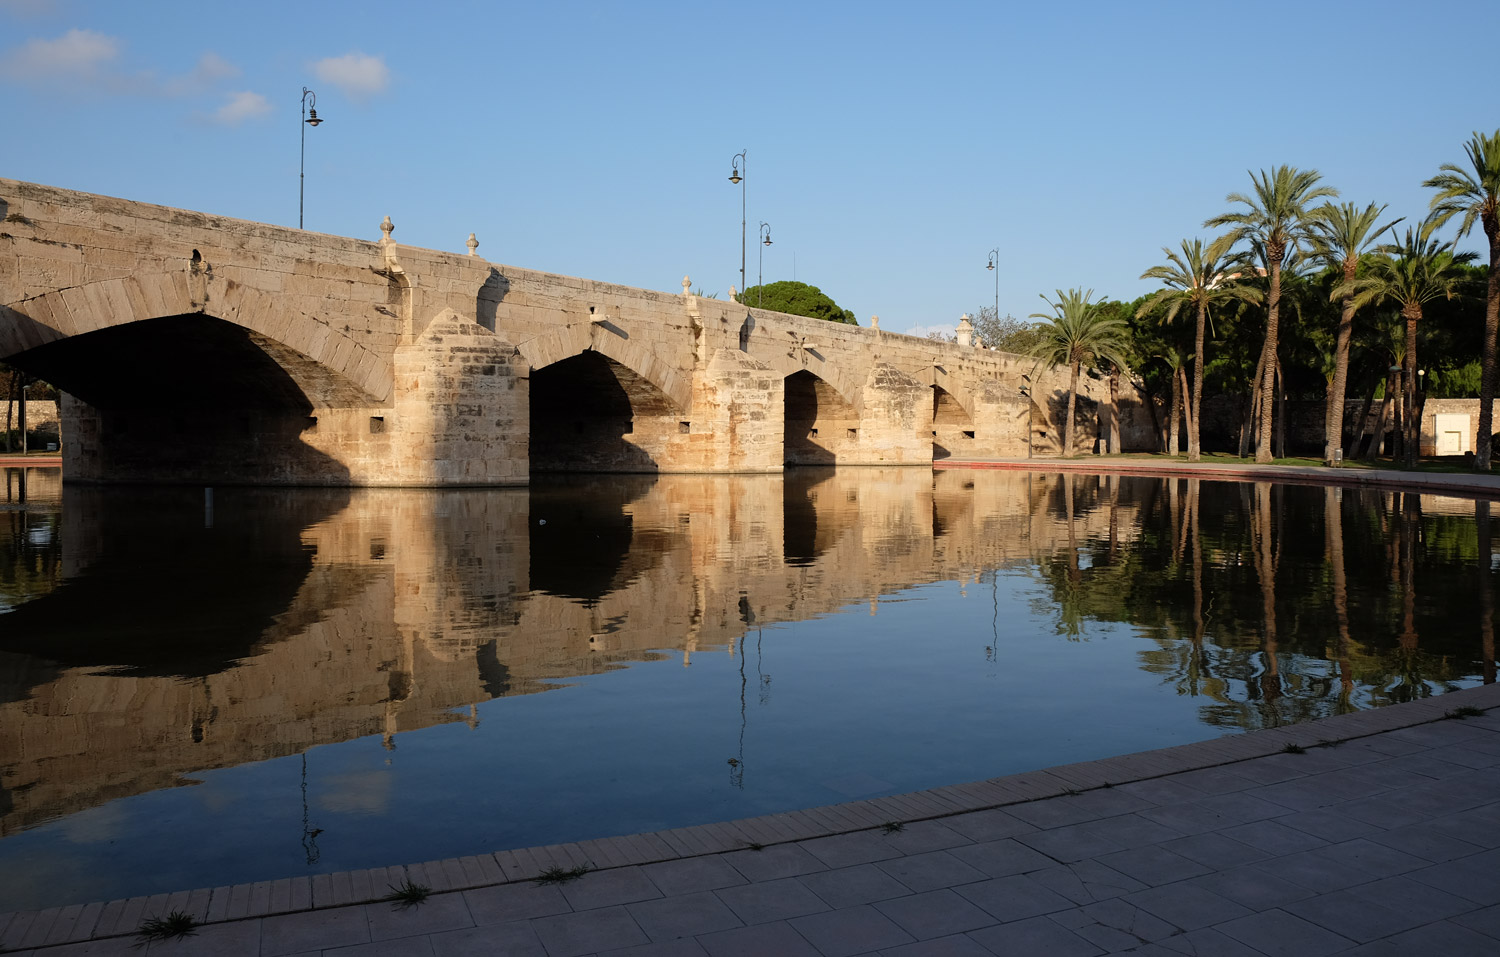 One of the old bridges that used to cross the River Turia - now a park running through the city